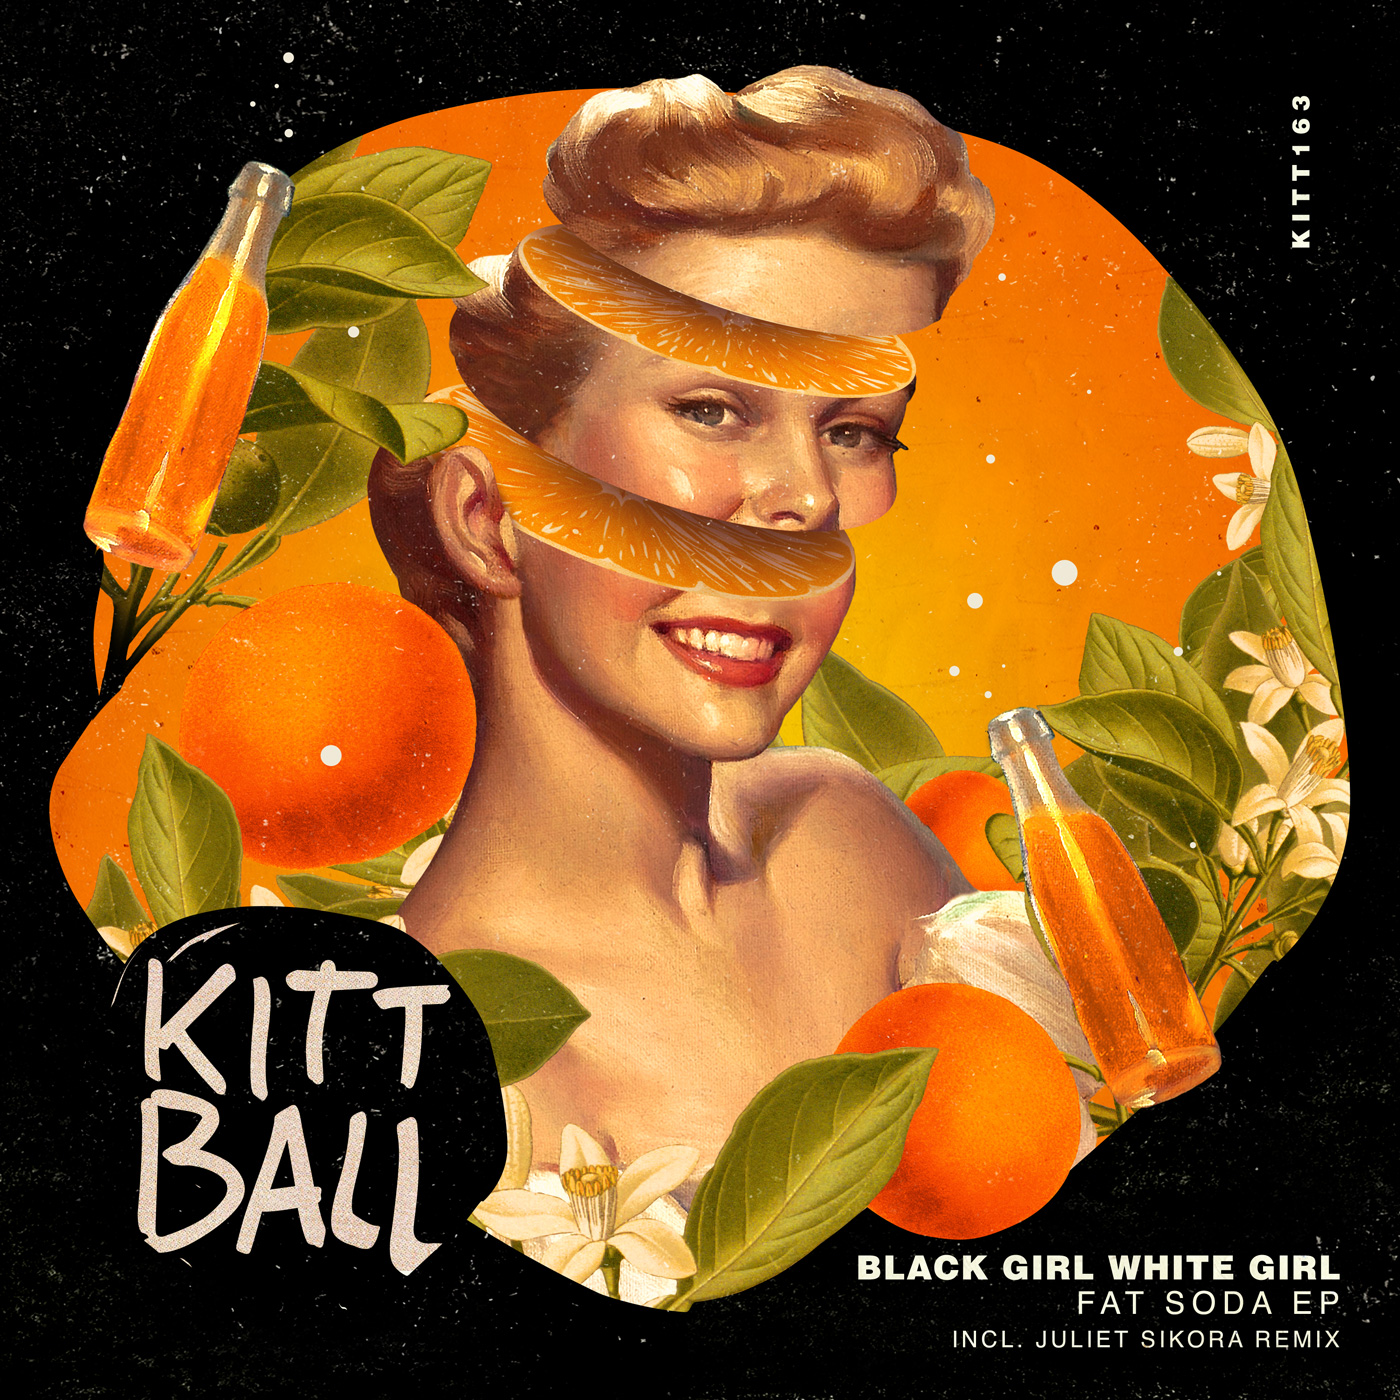 Black Girl White Girl - Fat Soda EP Cover design artwork